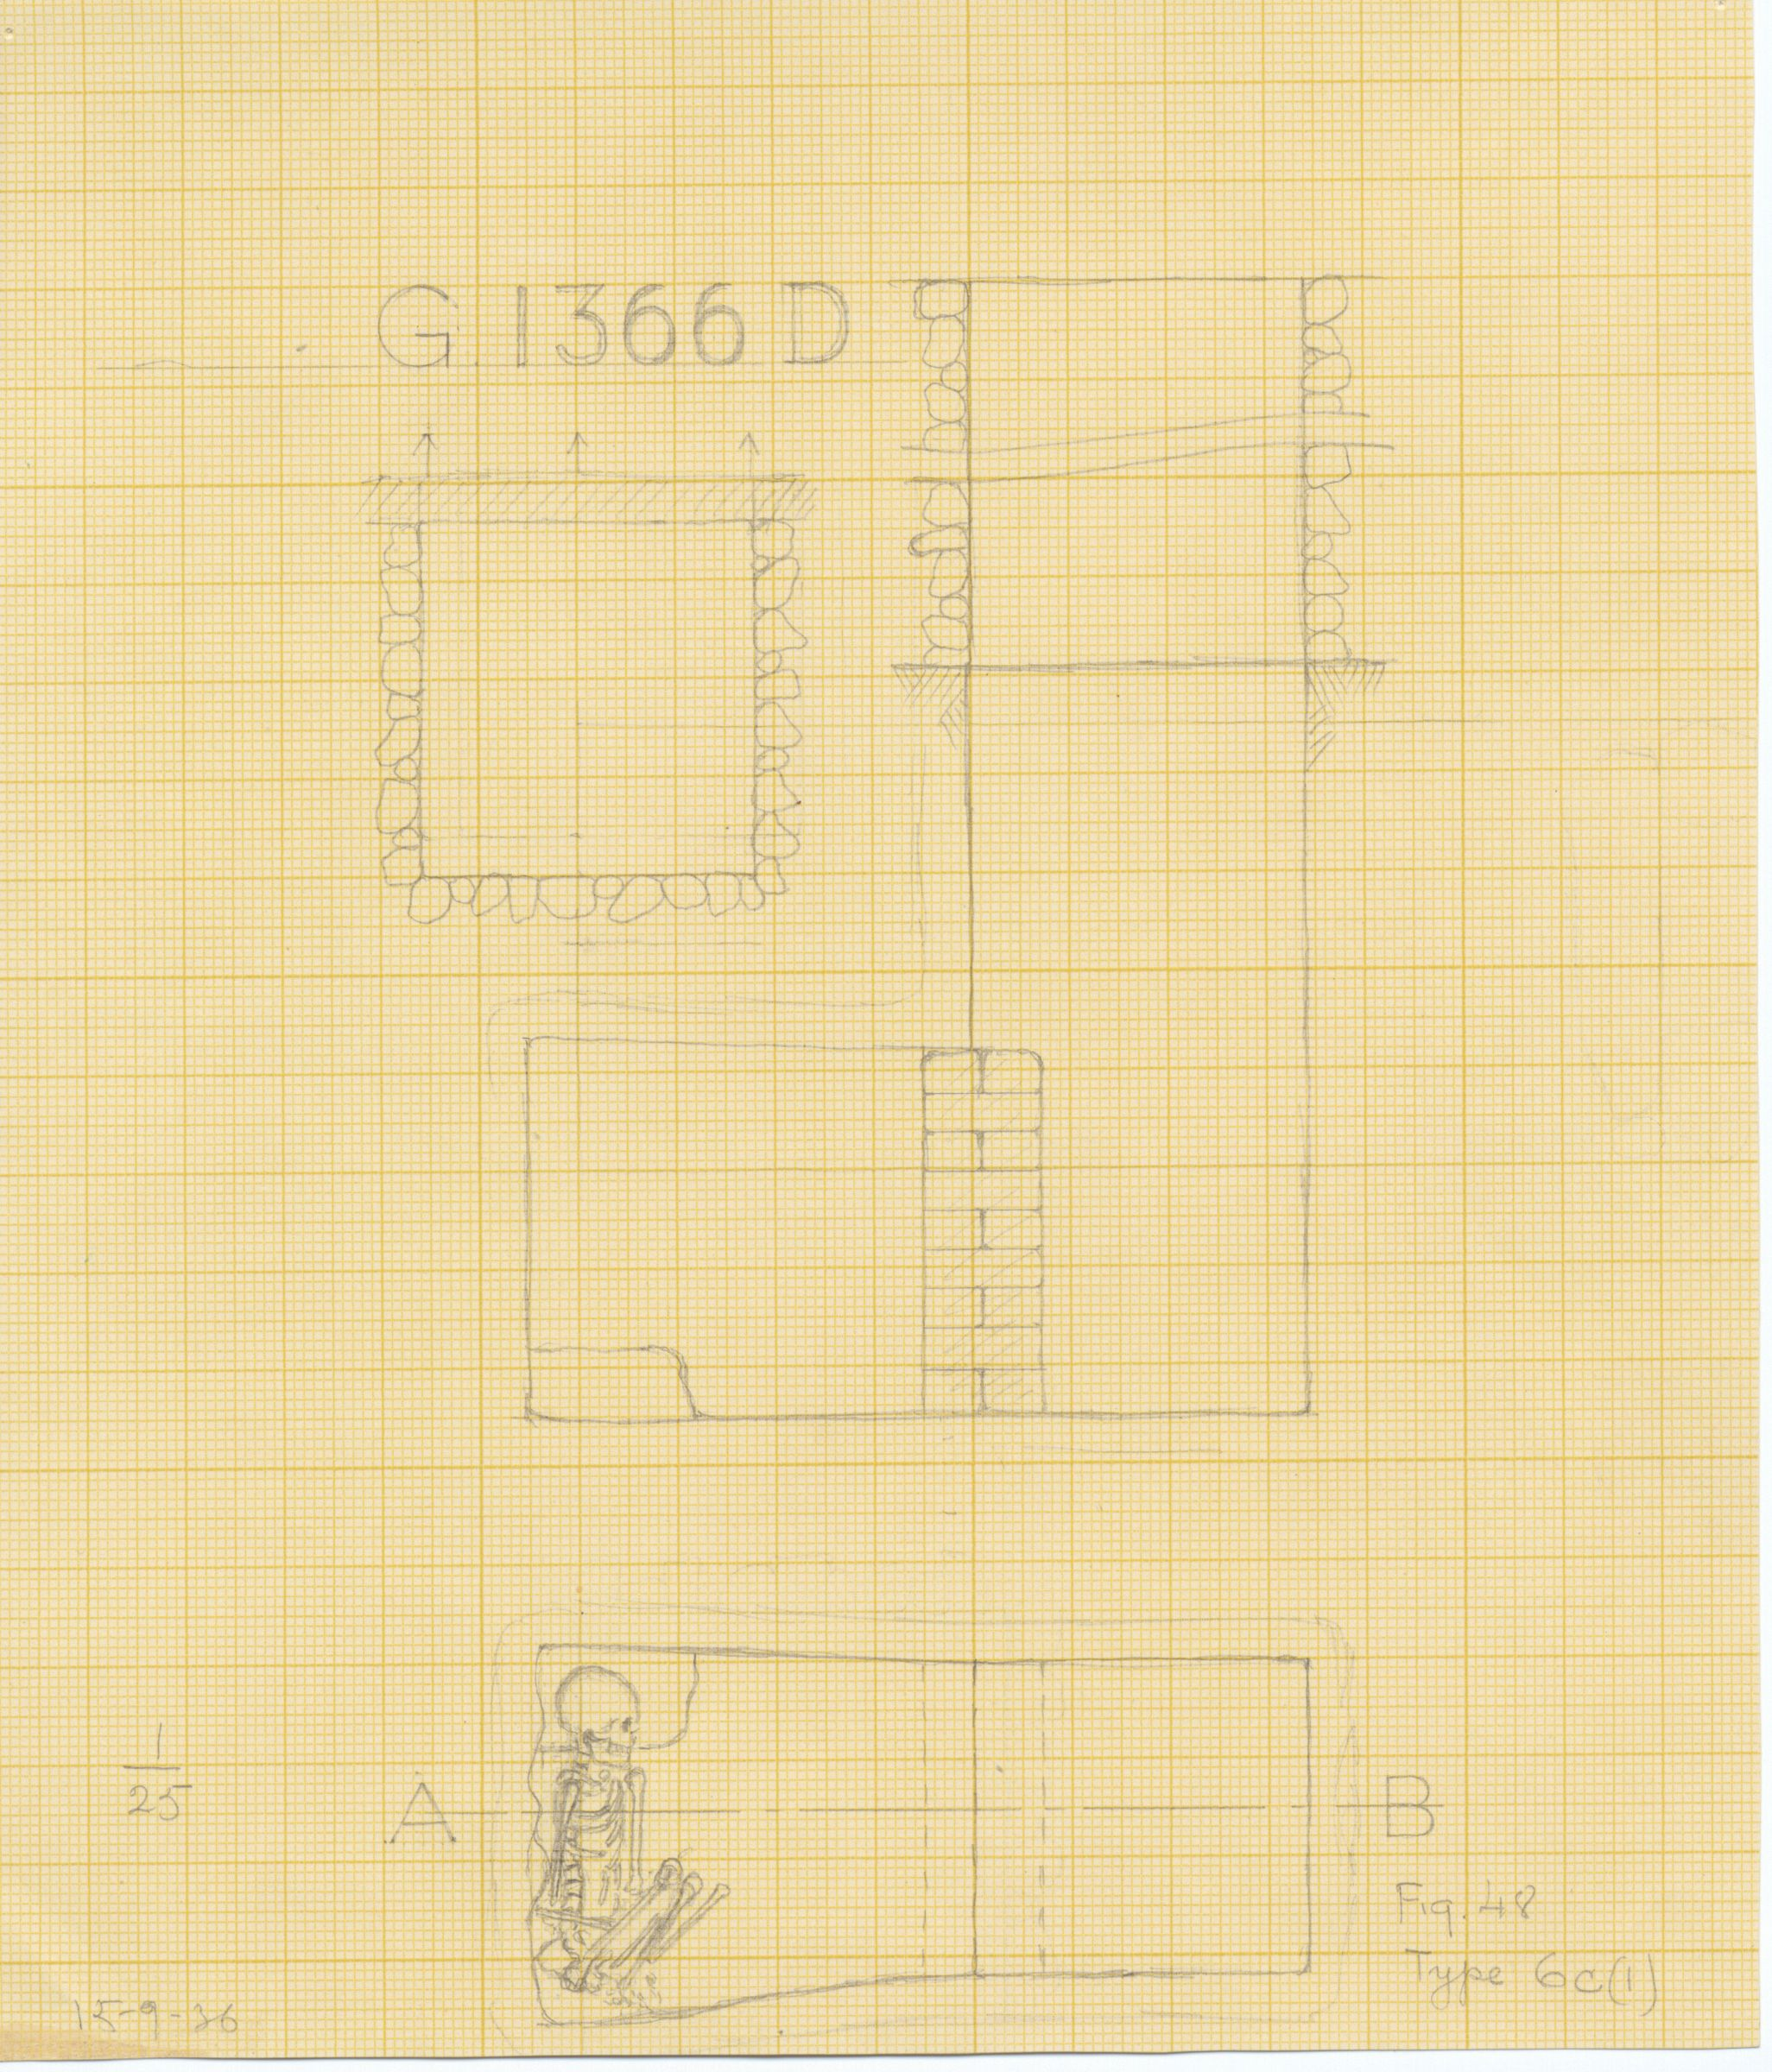 Maps and plans: G 1366, Shaft D